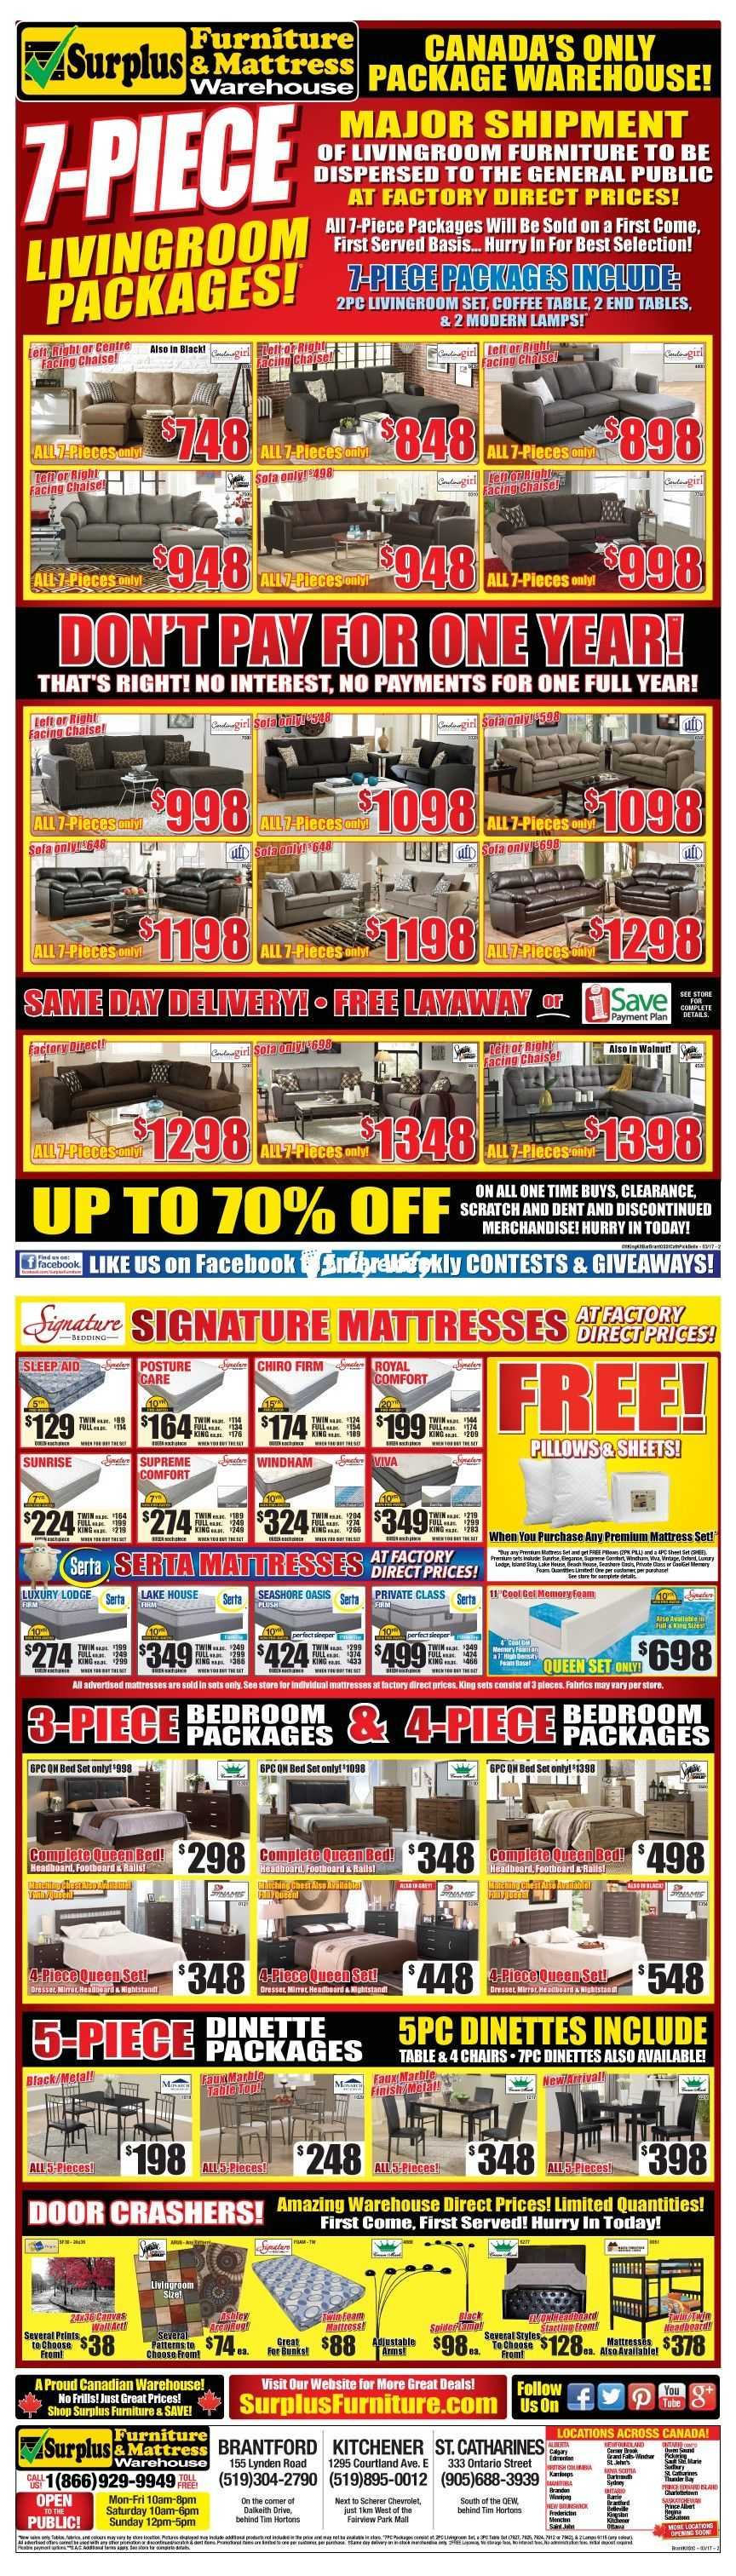 Surplus Furniture Kitchener Surplus Furniture Mattress Warehouse Kitchener Flyer March 7